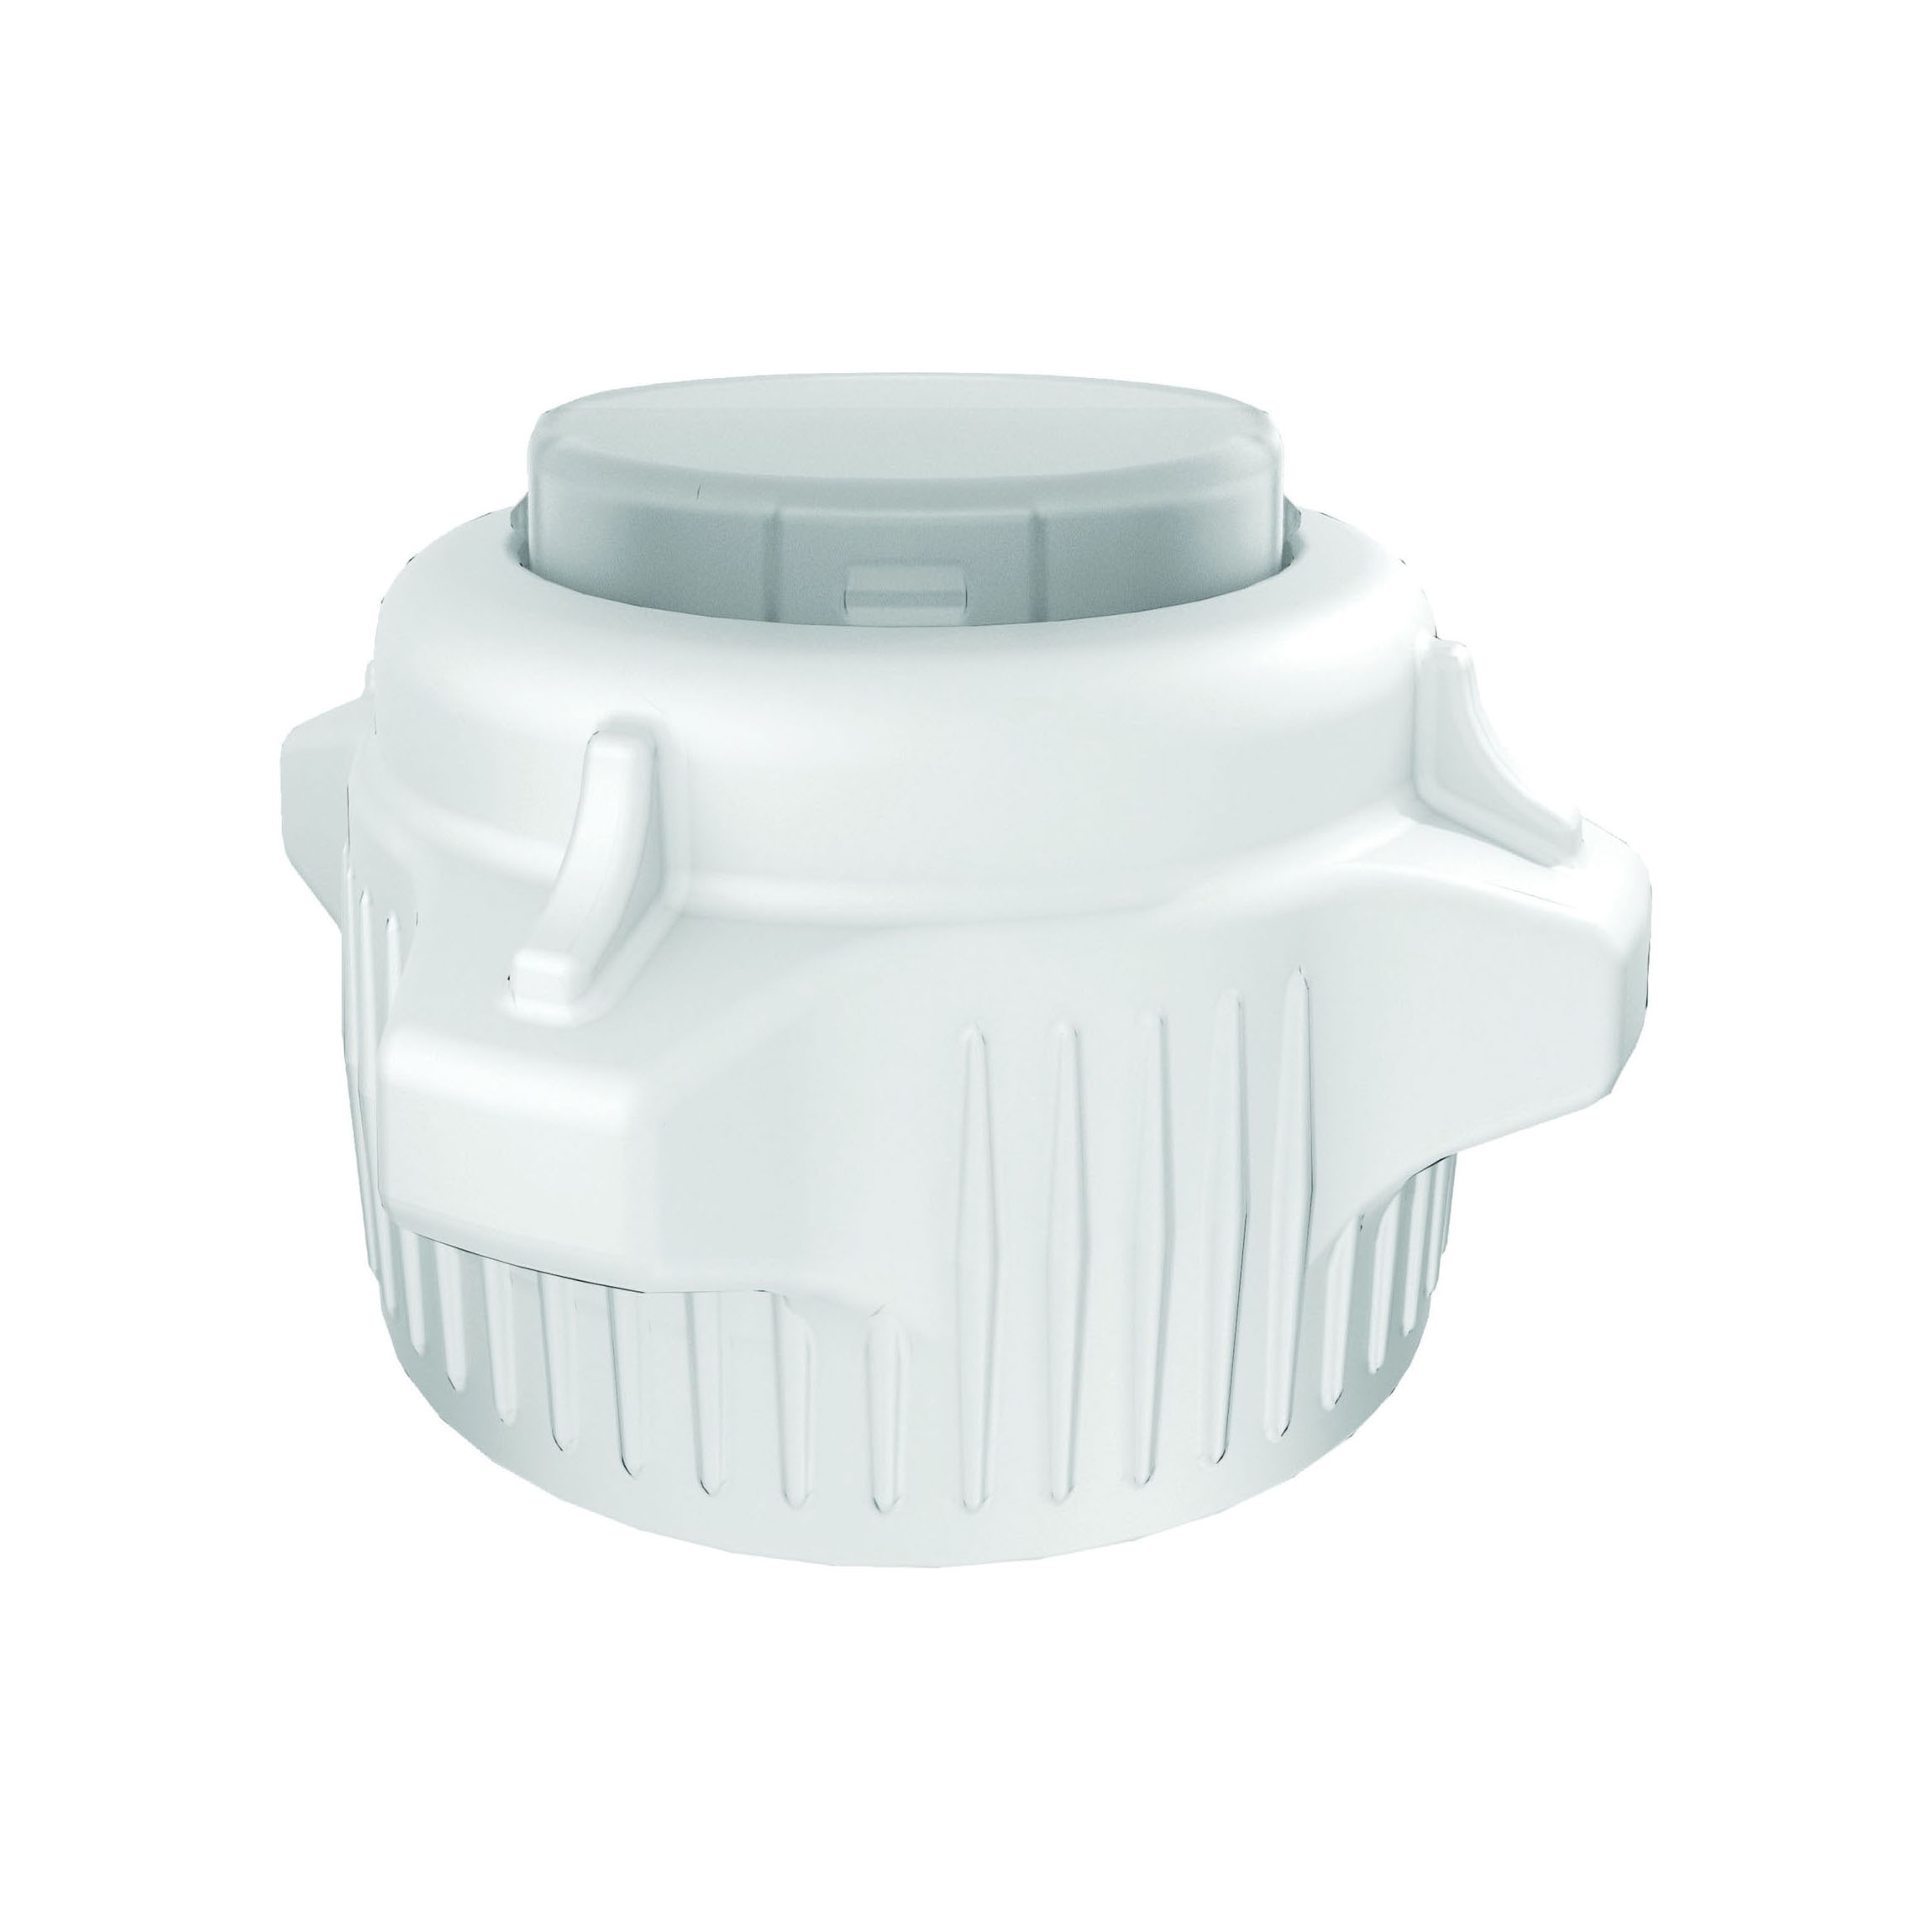 Justrite® 12853 Open Top Carboy Cap With Closed Adapter, 3 in Dia x 53 mm Mouth, Polypropylene, White